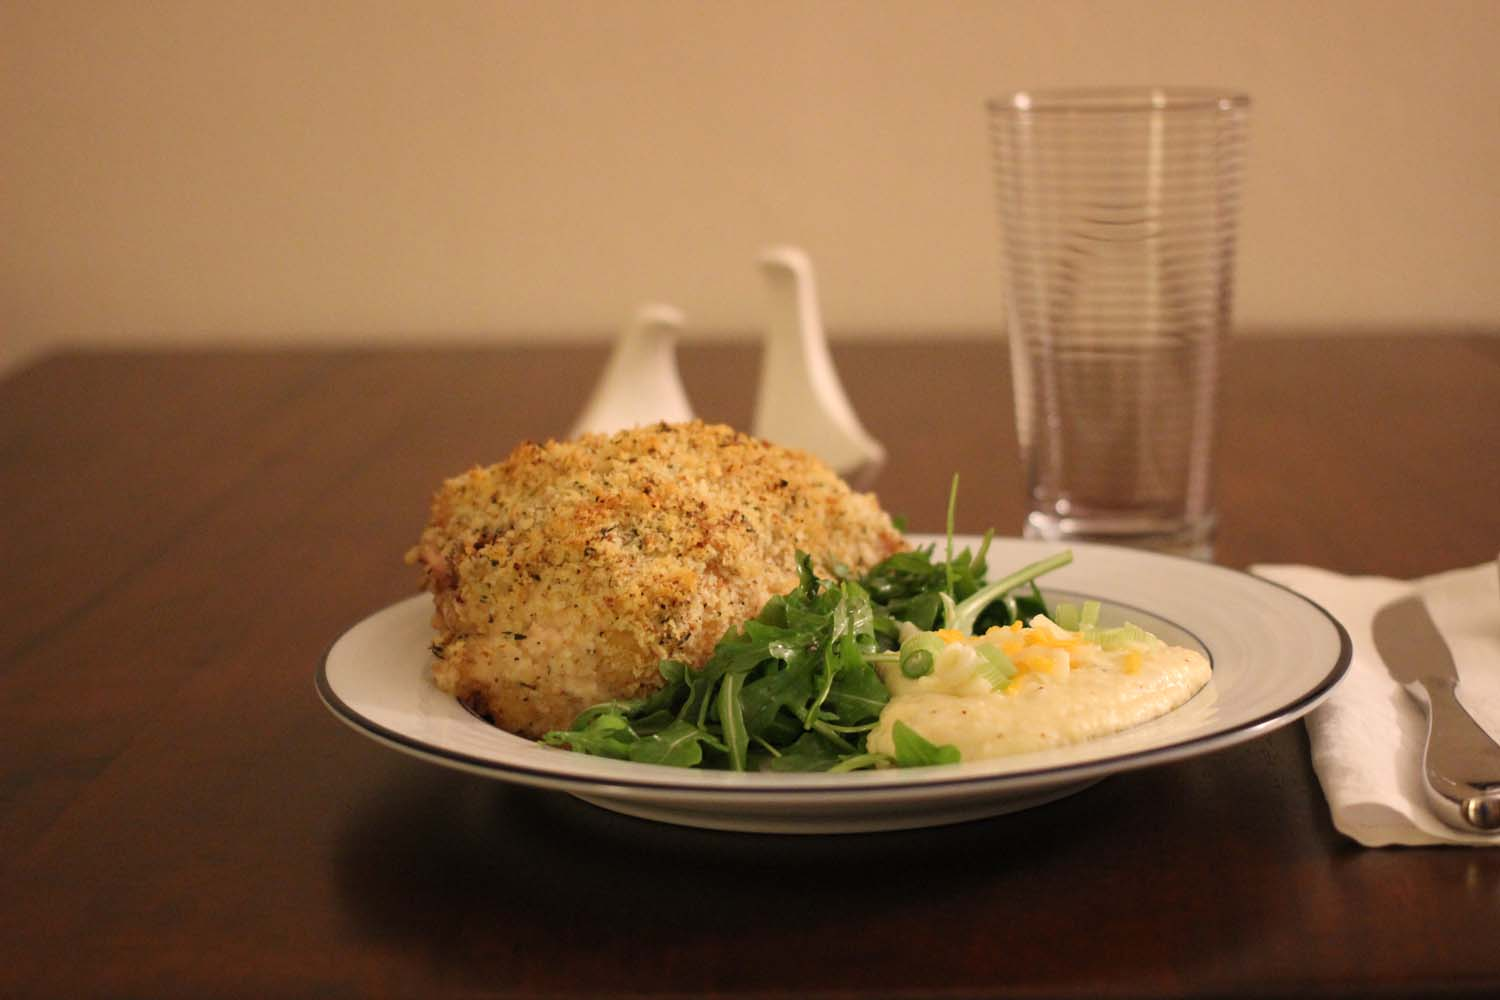 Crispy Mustard Roasted Chicken with Cheddar Grits and Arugula Salad; Image: Laura Messersmith